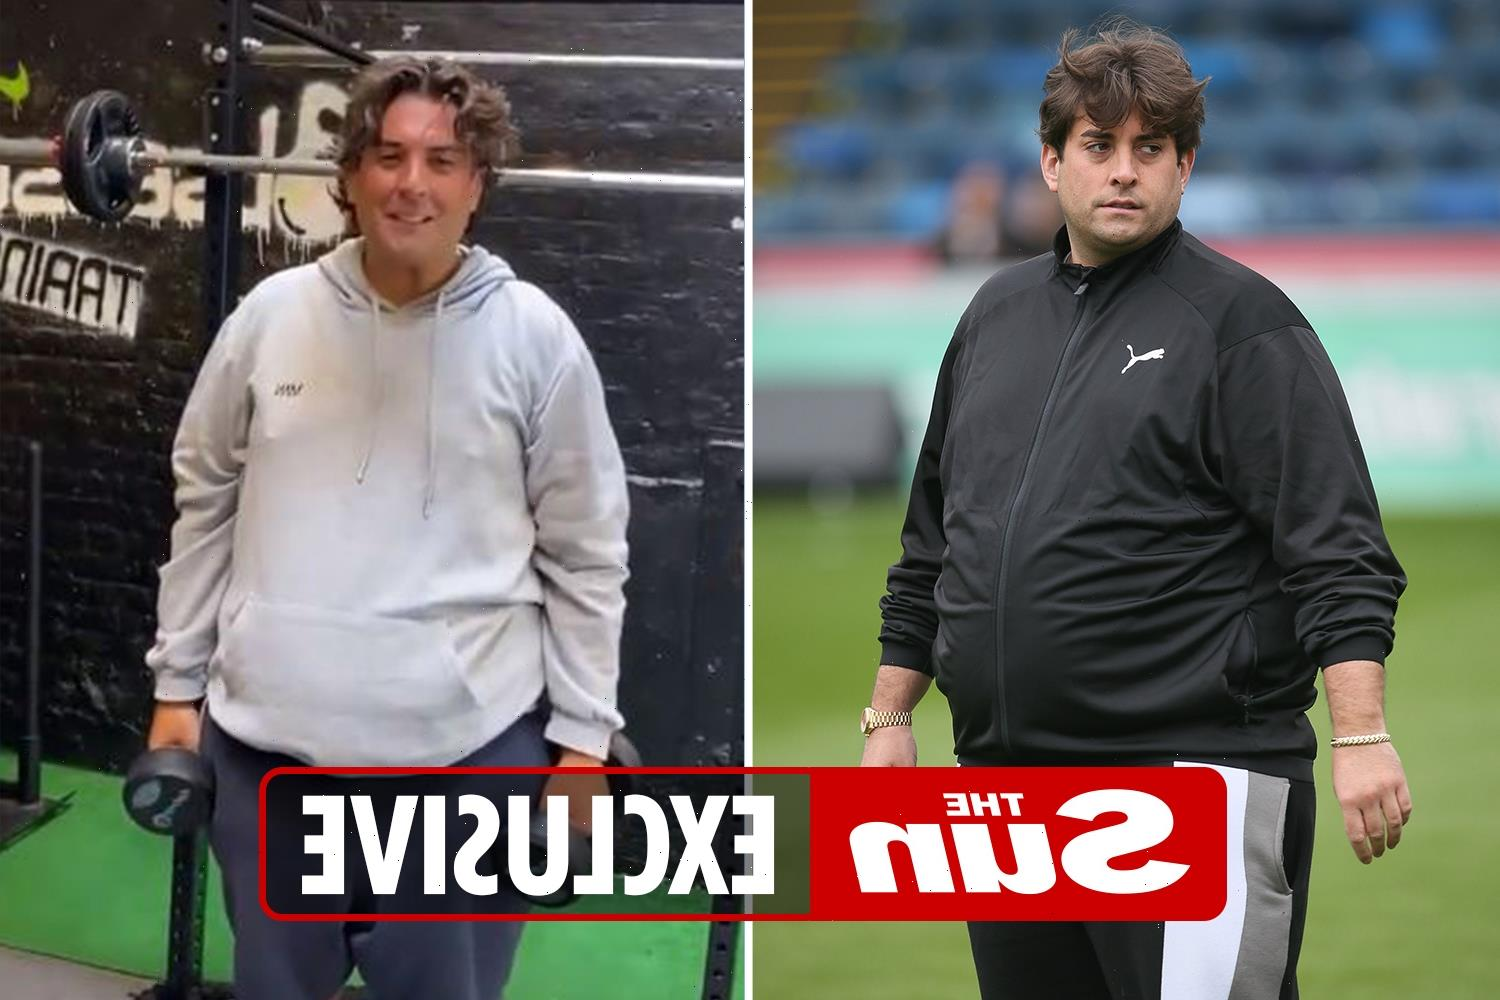 James Argent has lost FIVE stone after gastric band surgery and 'feels 10 years younger' – but he's still got 3st to go